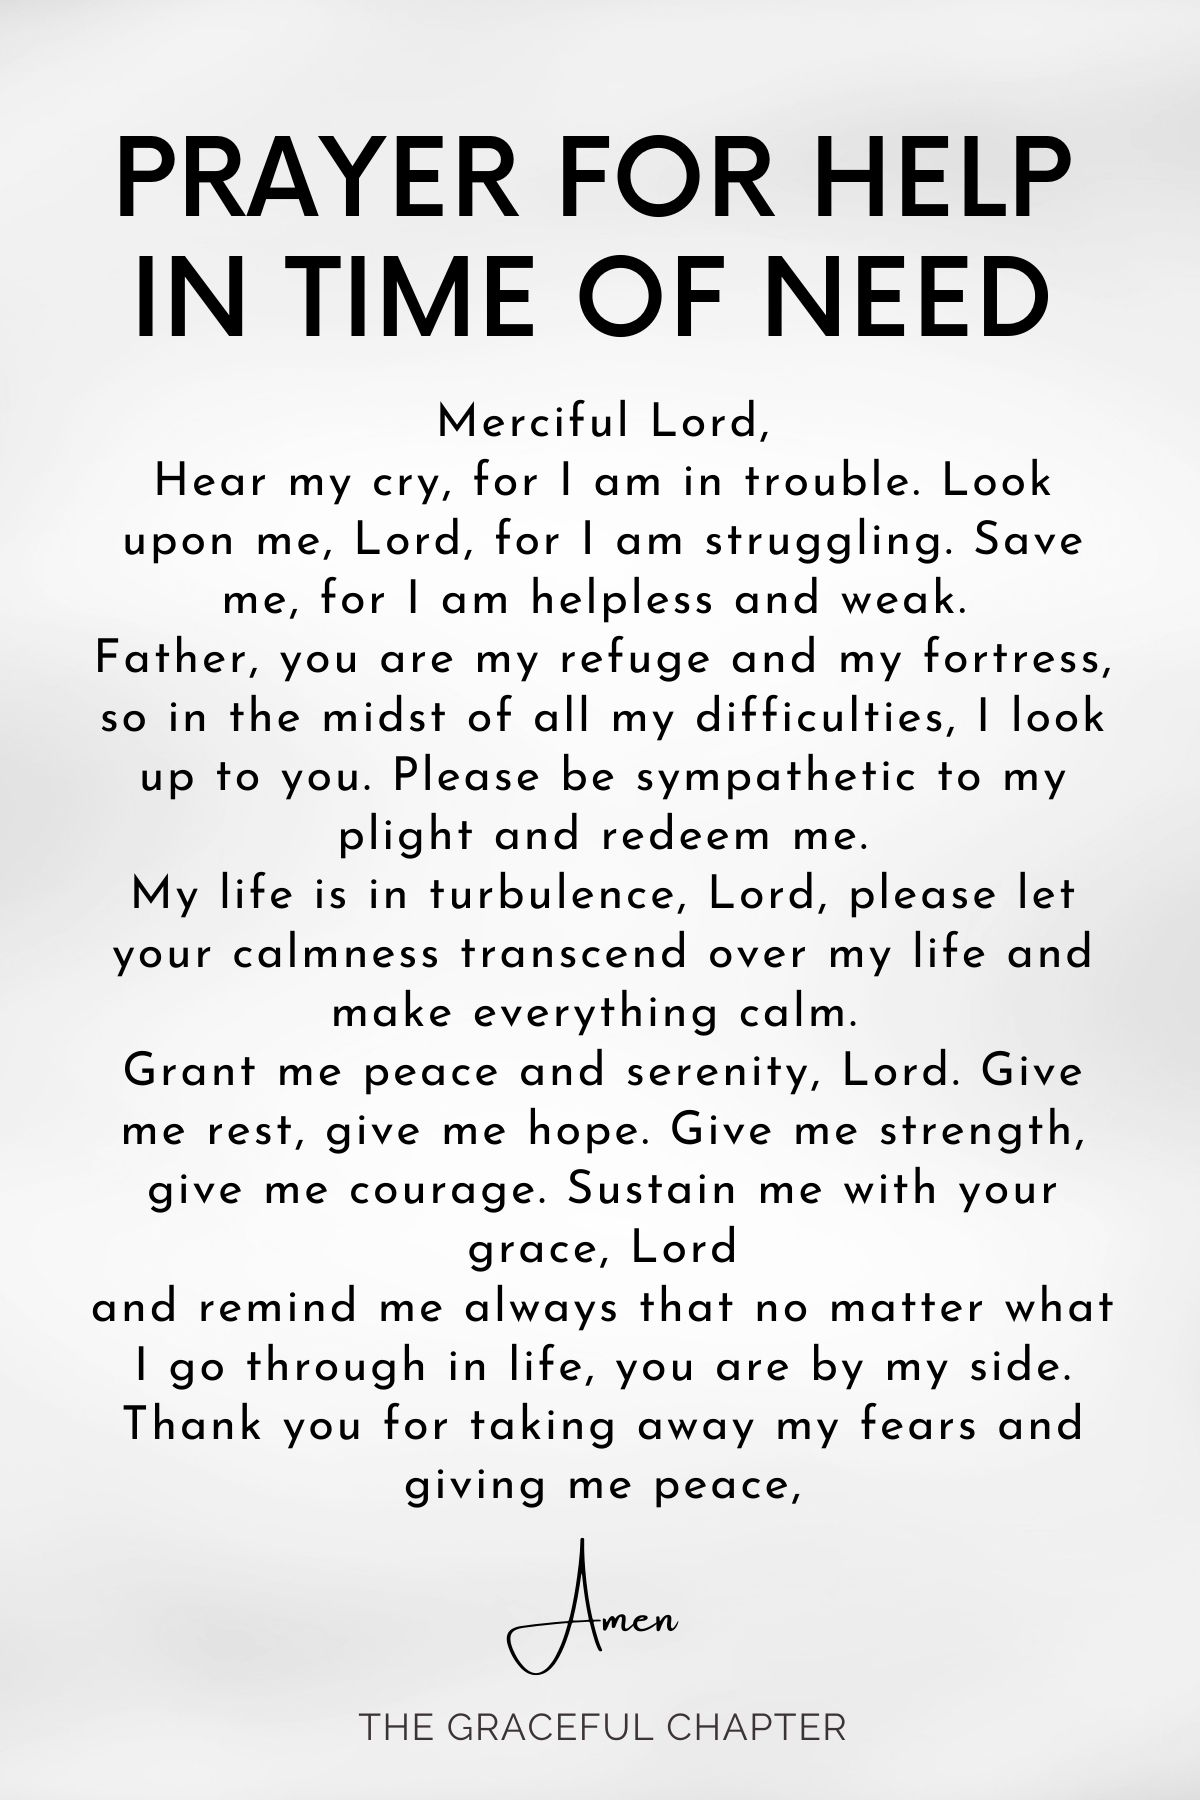 Prayer for help in time of need